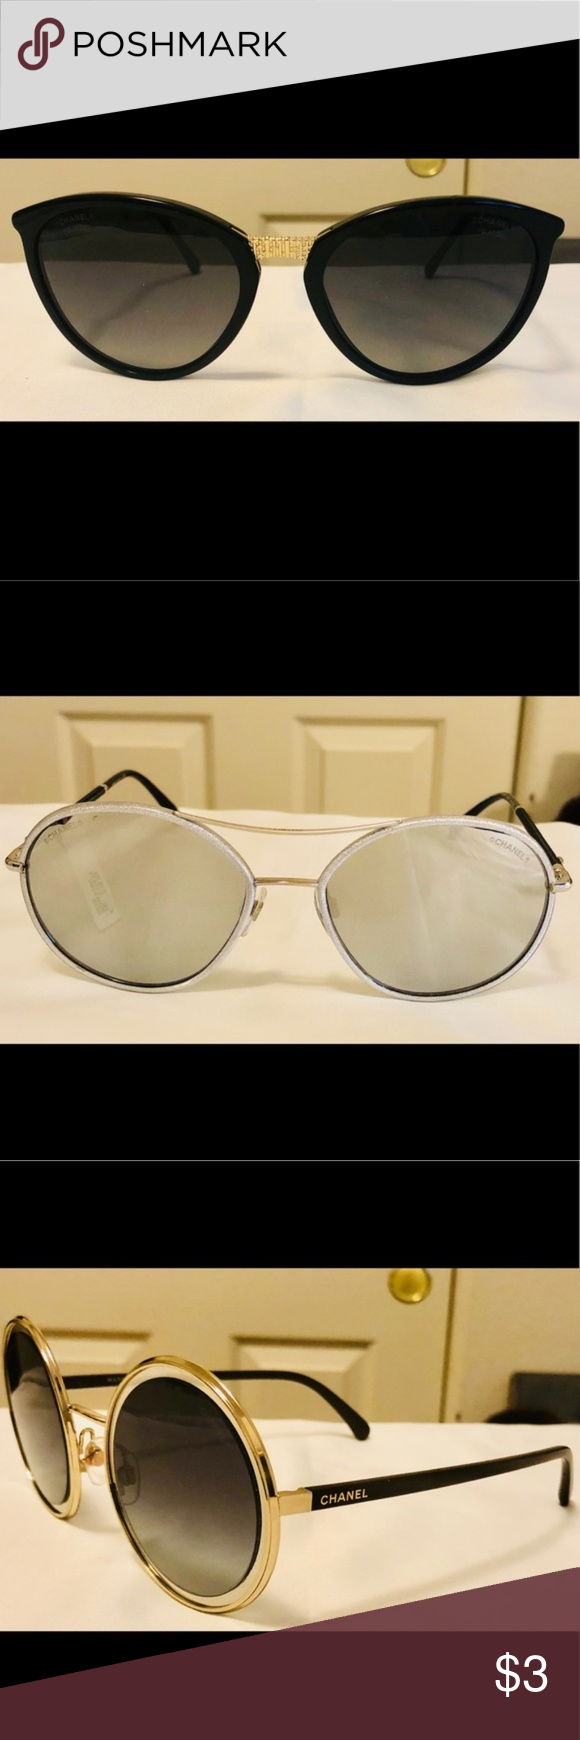 85702449ba455 Trade For Samiamatha Only Black CHANEL 5382 Sunglasses (new with defect)  NWT Pilot Chanel Silver Mirrored Sunglasses 4228-Q New CHANEL Gold Round  Sunglasses ...